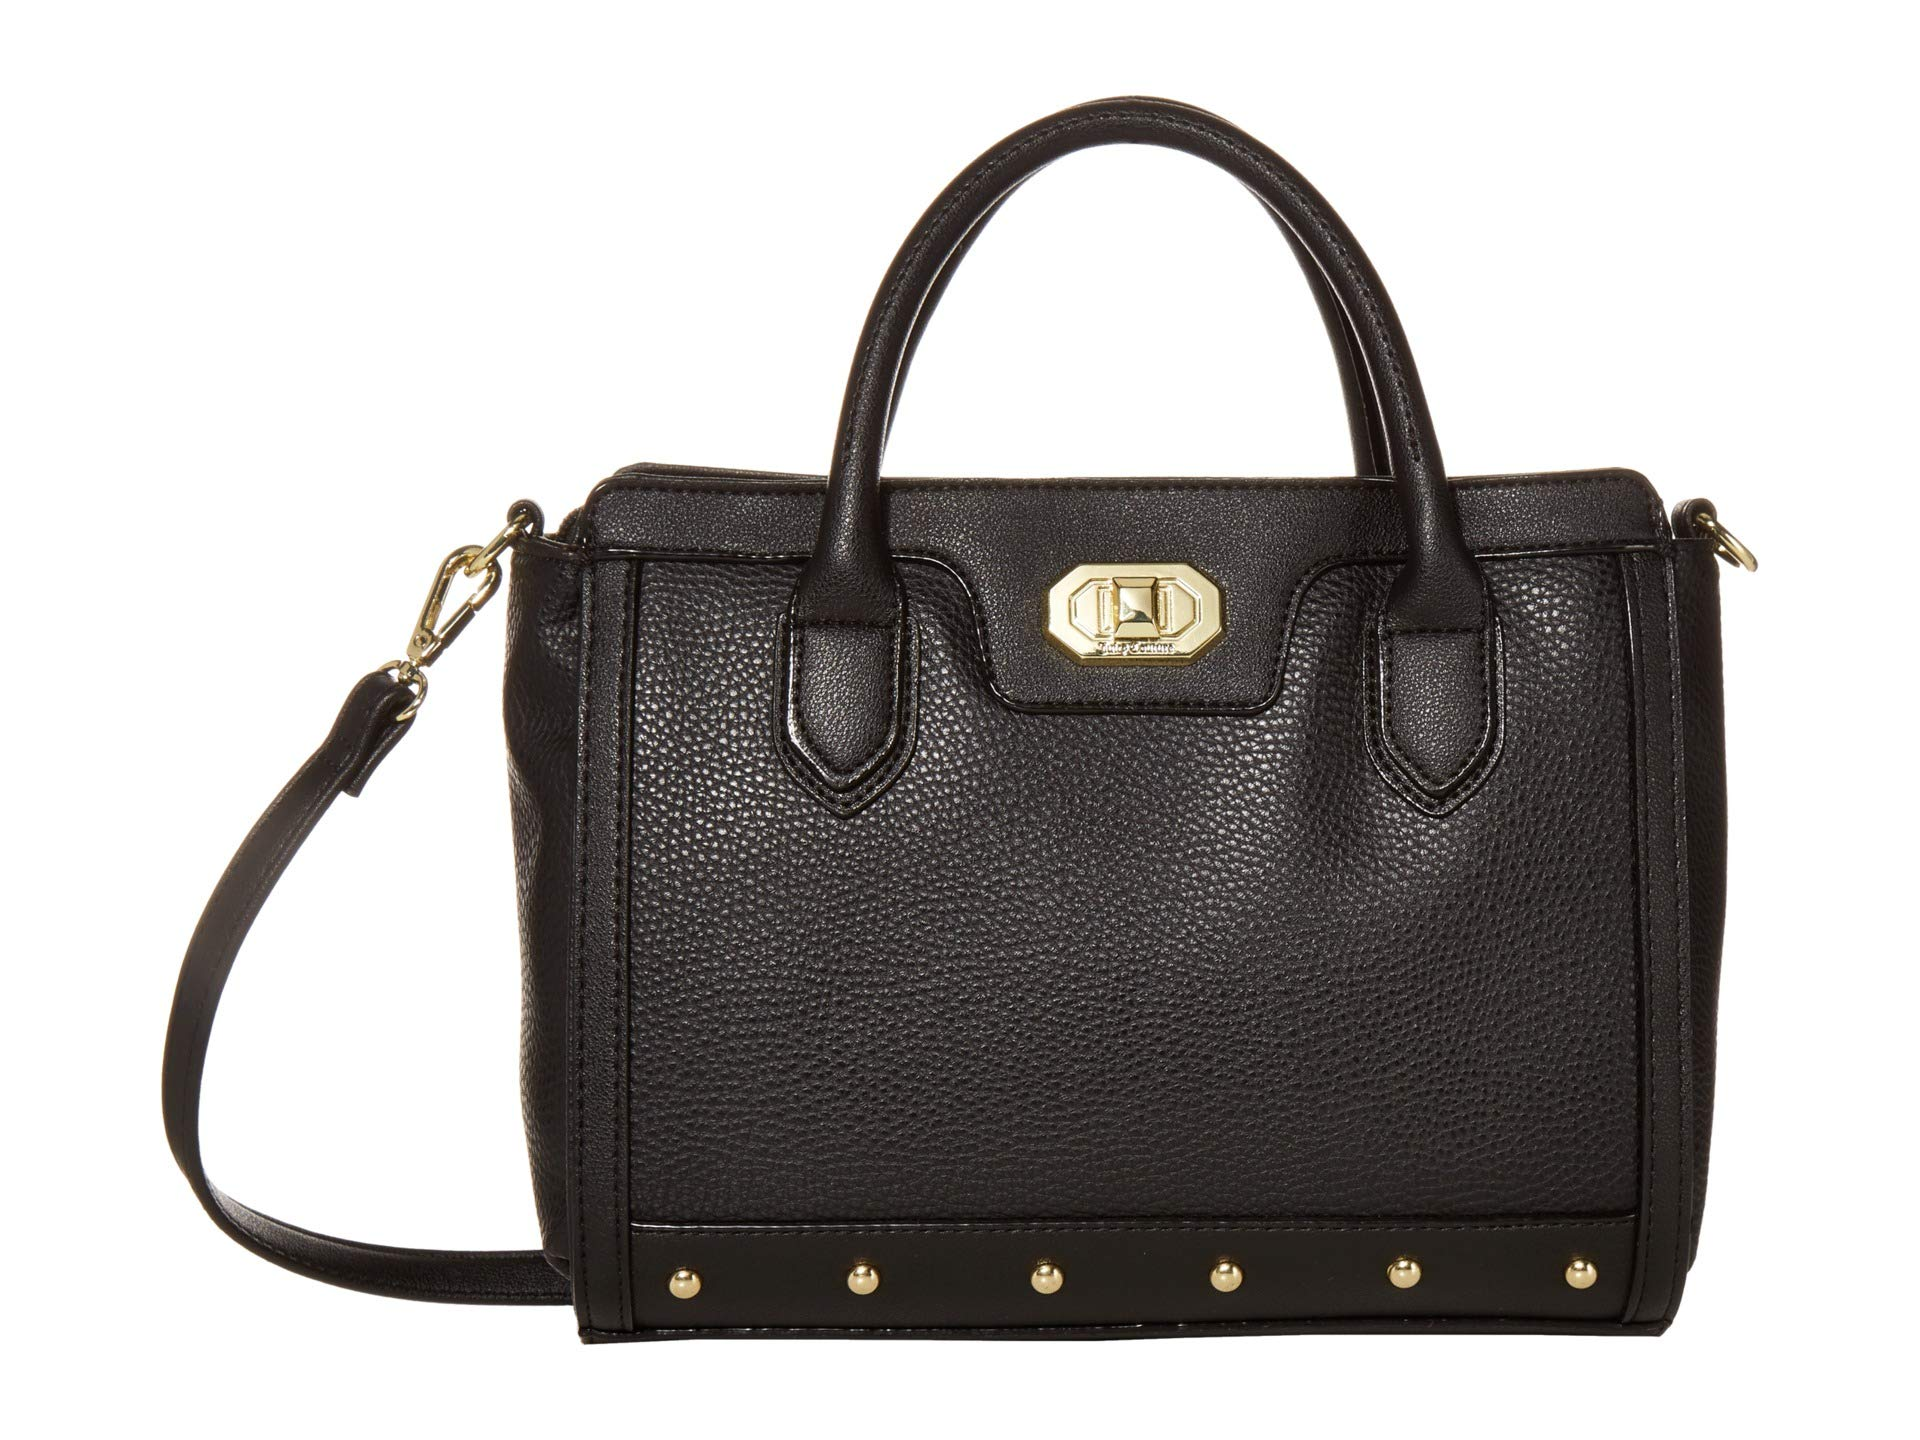 Juicy Couture Juicy Couture Love Me Not Satchel